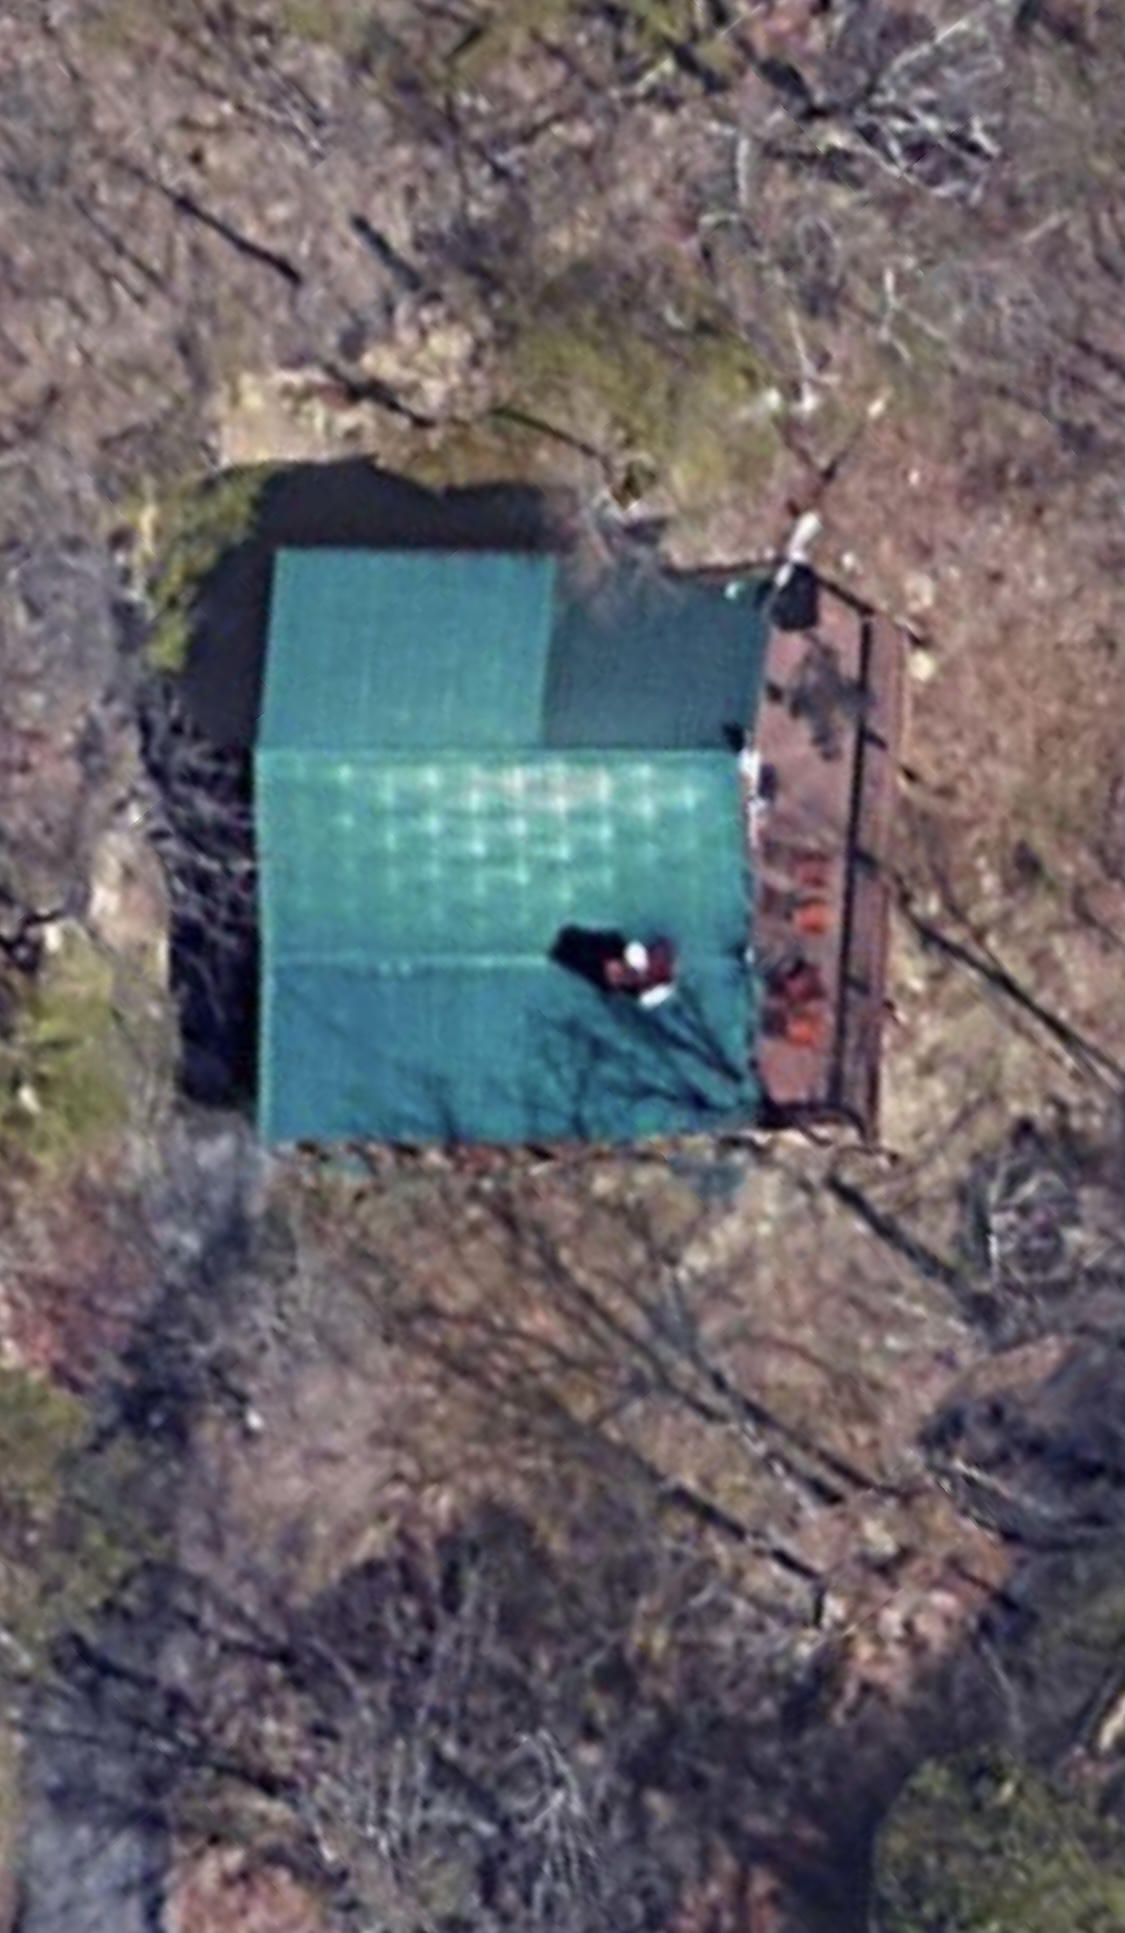 This is an aerial view of a green metal roof cabin